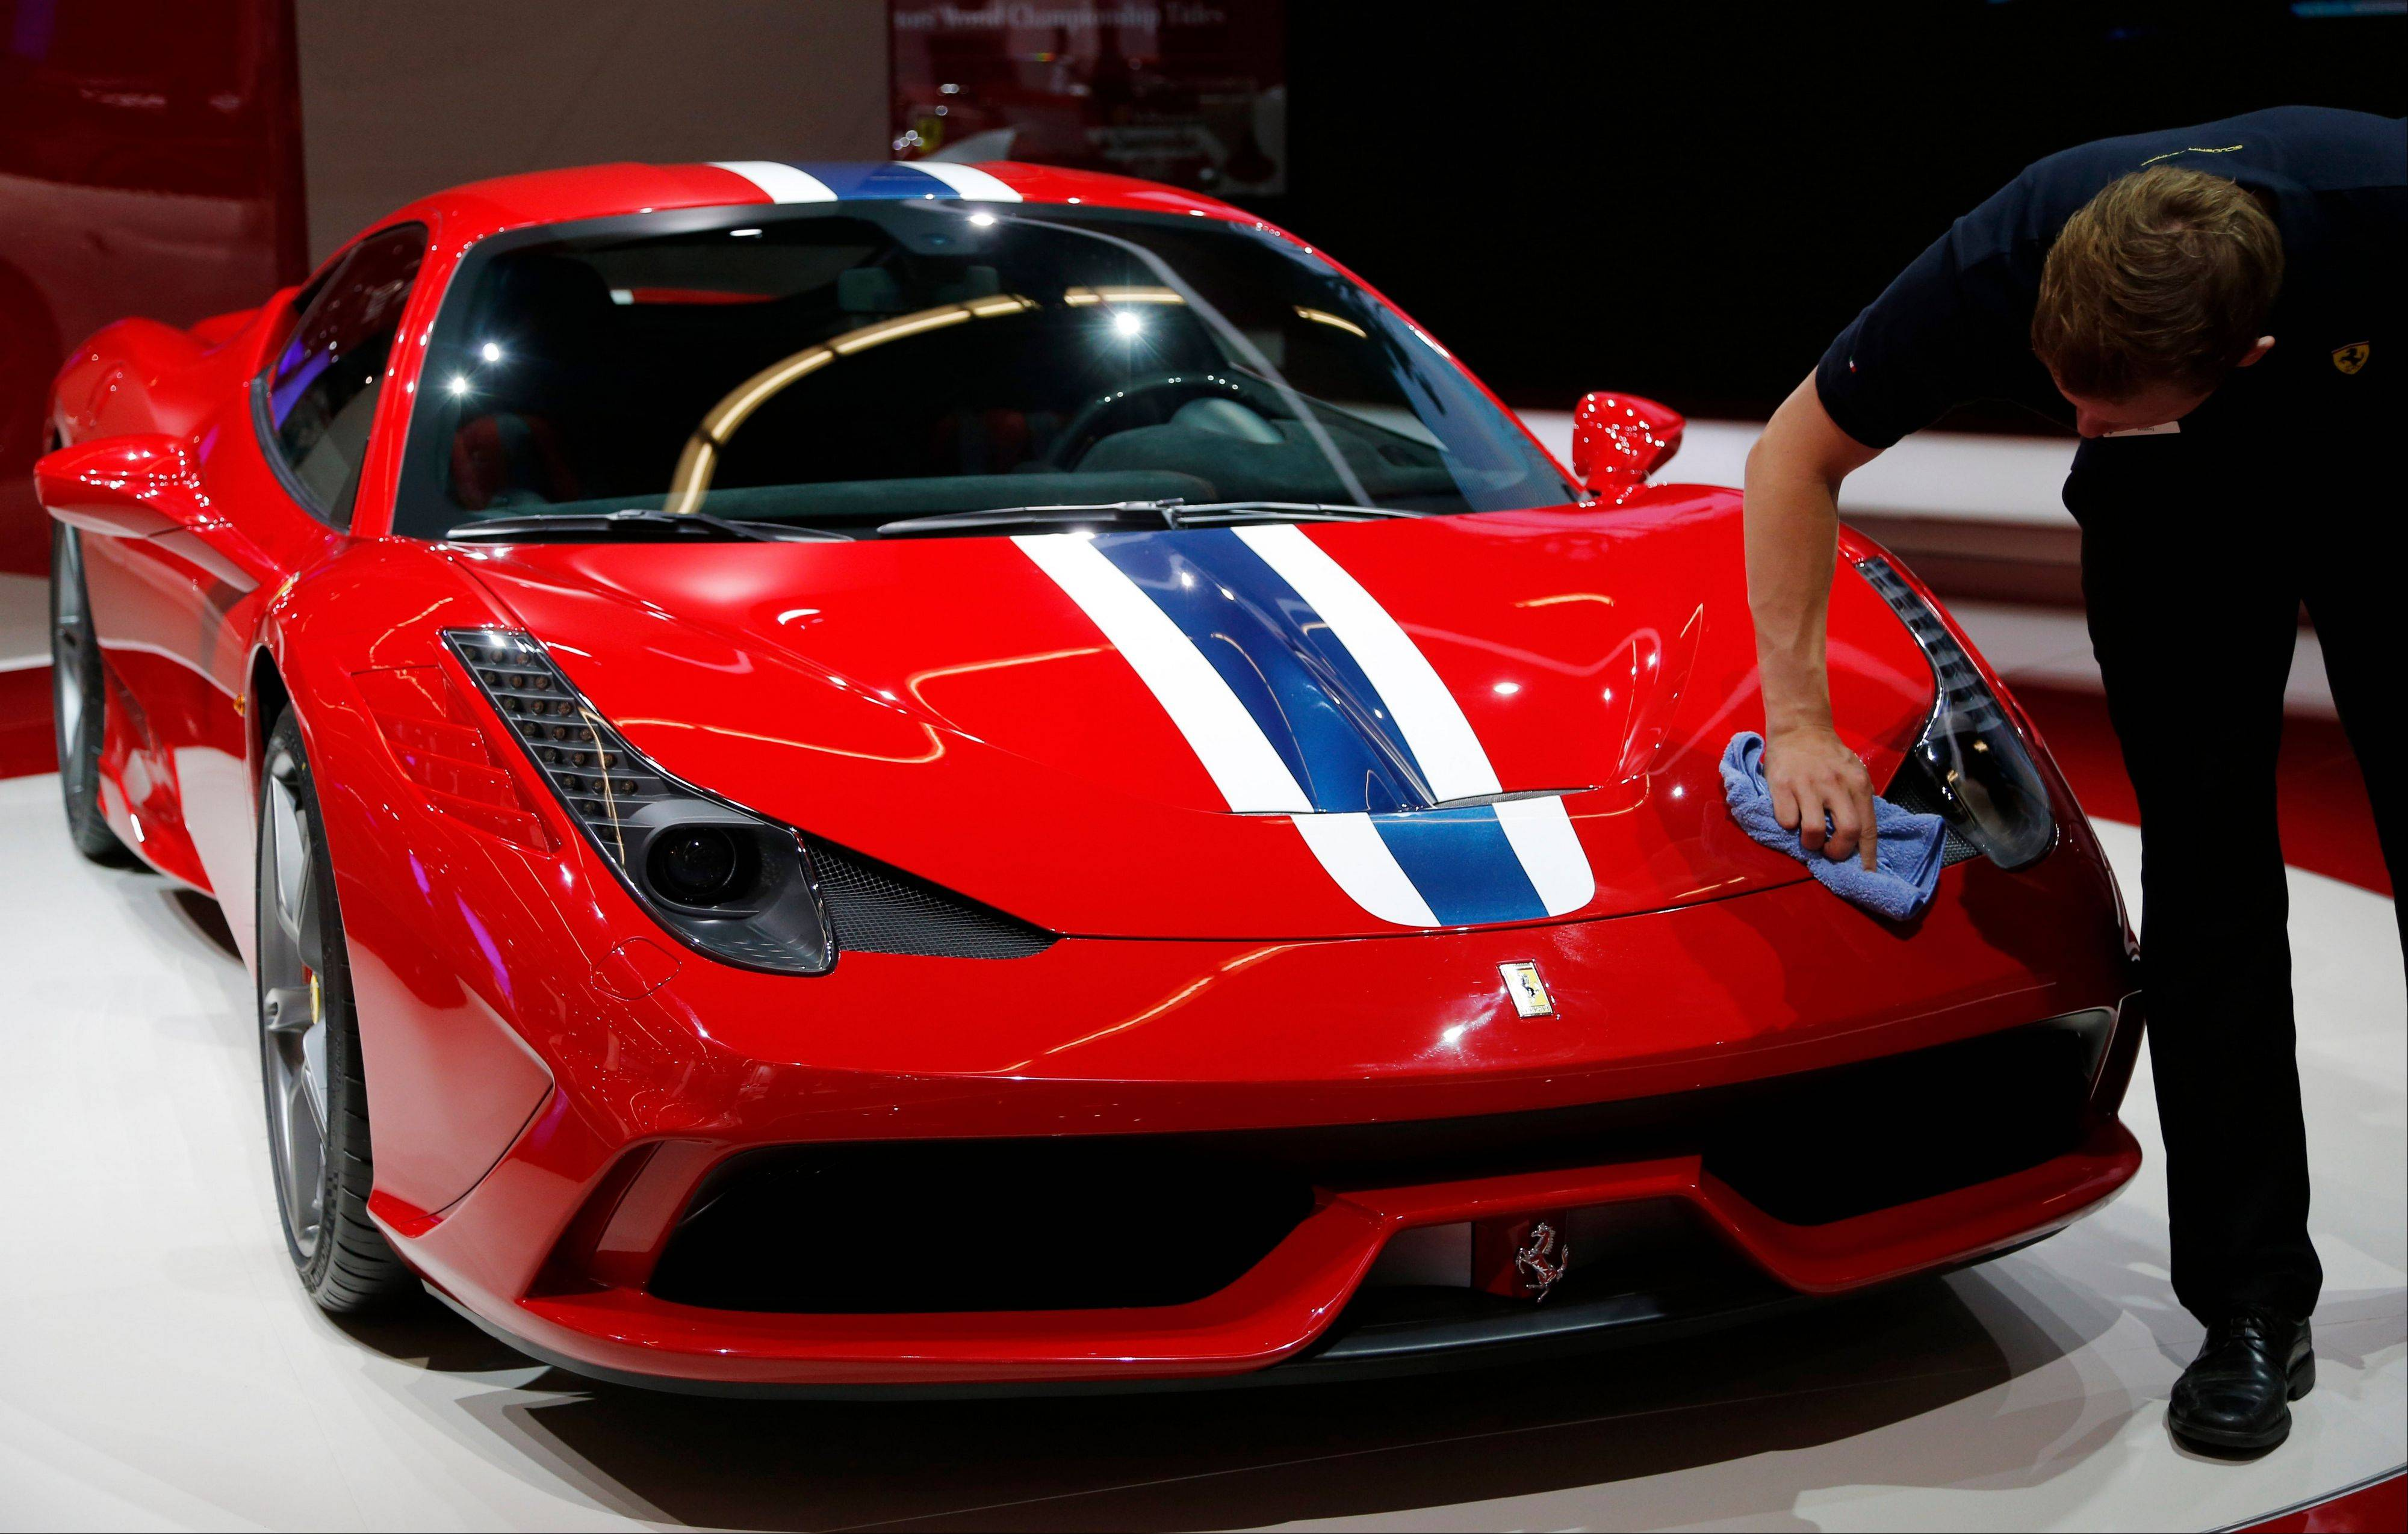 A man cleans a Ferrari 458 Speciale during the second press day of the 65th Frankfurt Auto Show in Frankfurt, Germany.